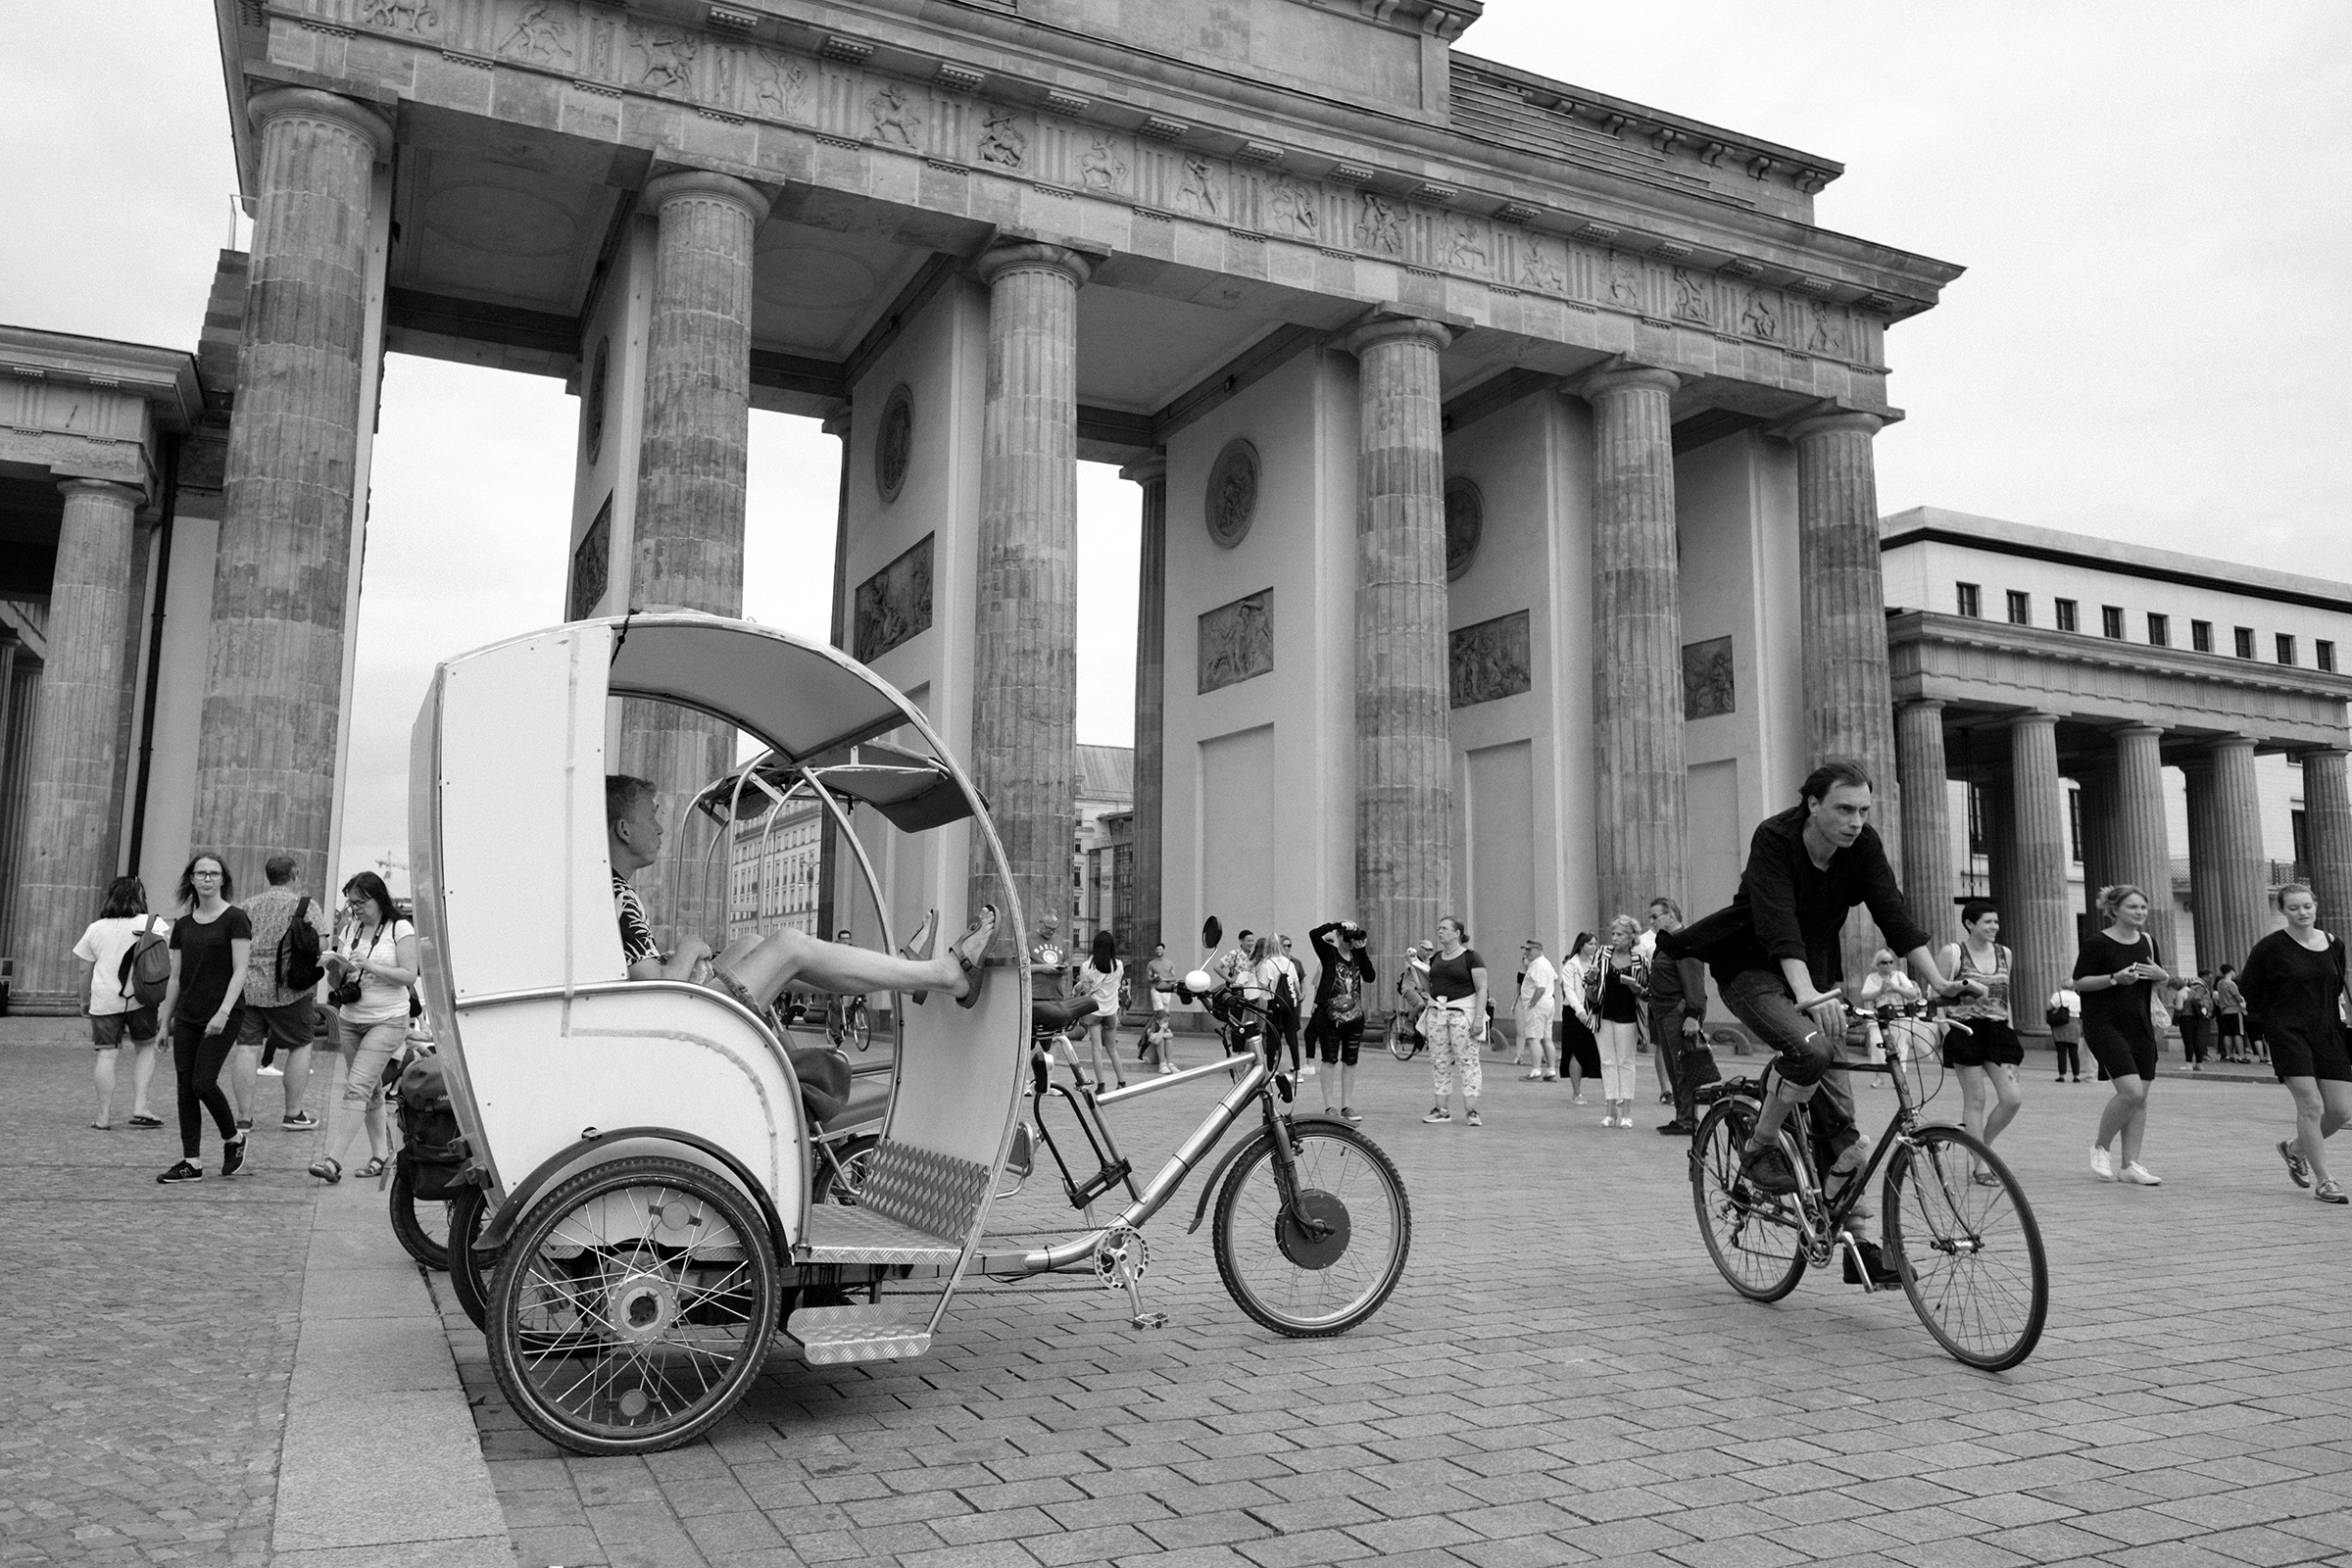 The famous Brandenburger Tor where the wall finally came down in 1989.